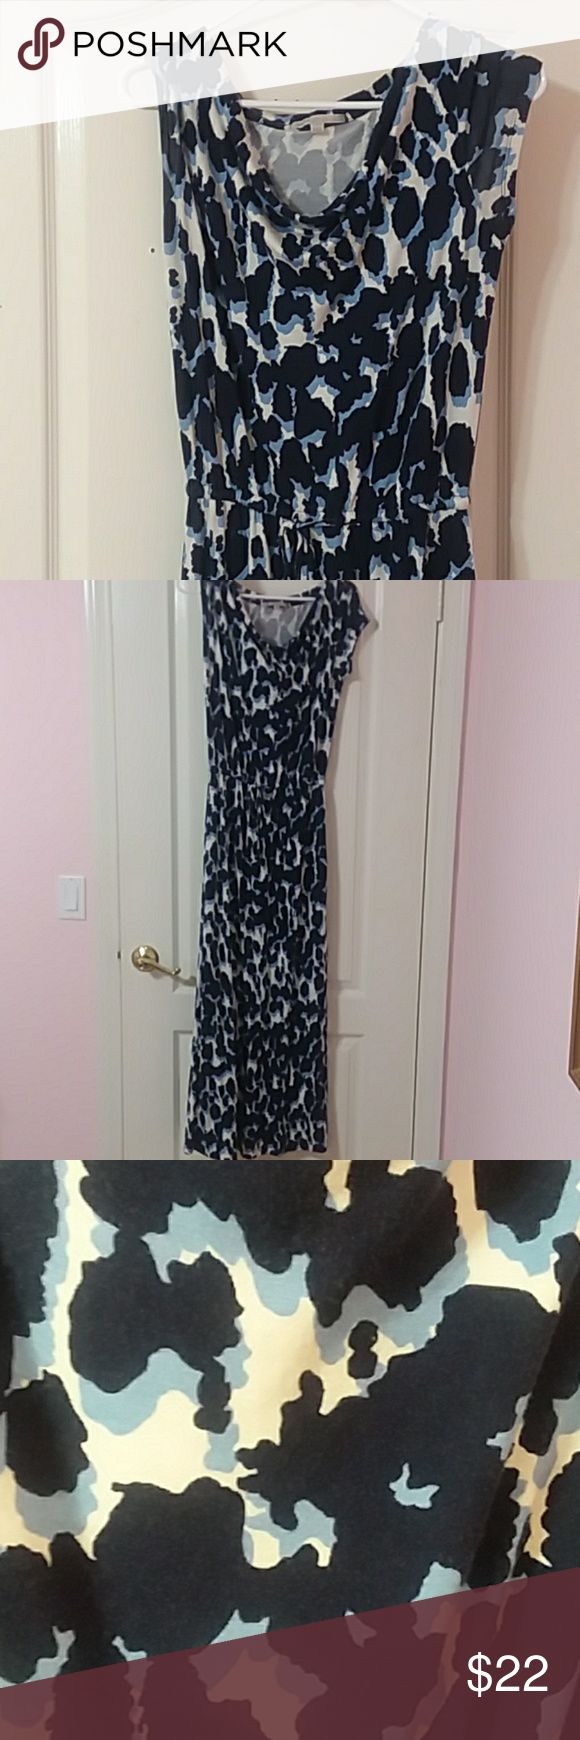 Gap navy blue xs animal print maxi dress Gap navy blue animal print xs maxi dress. Guc. Some fading from wash and wear. Smoke free pet friendly home. Ties at waist. Approximate measurements 16 inches from pit to pit. From shoulder to bottom hem 52 inches. Dress maxi print animal xs navy blue gap. GAP Dresses Maxi